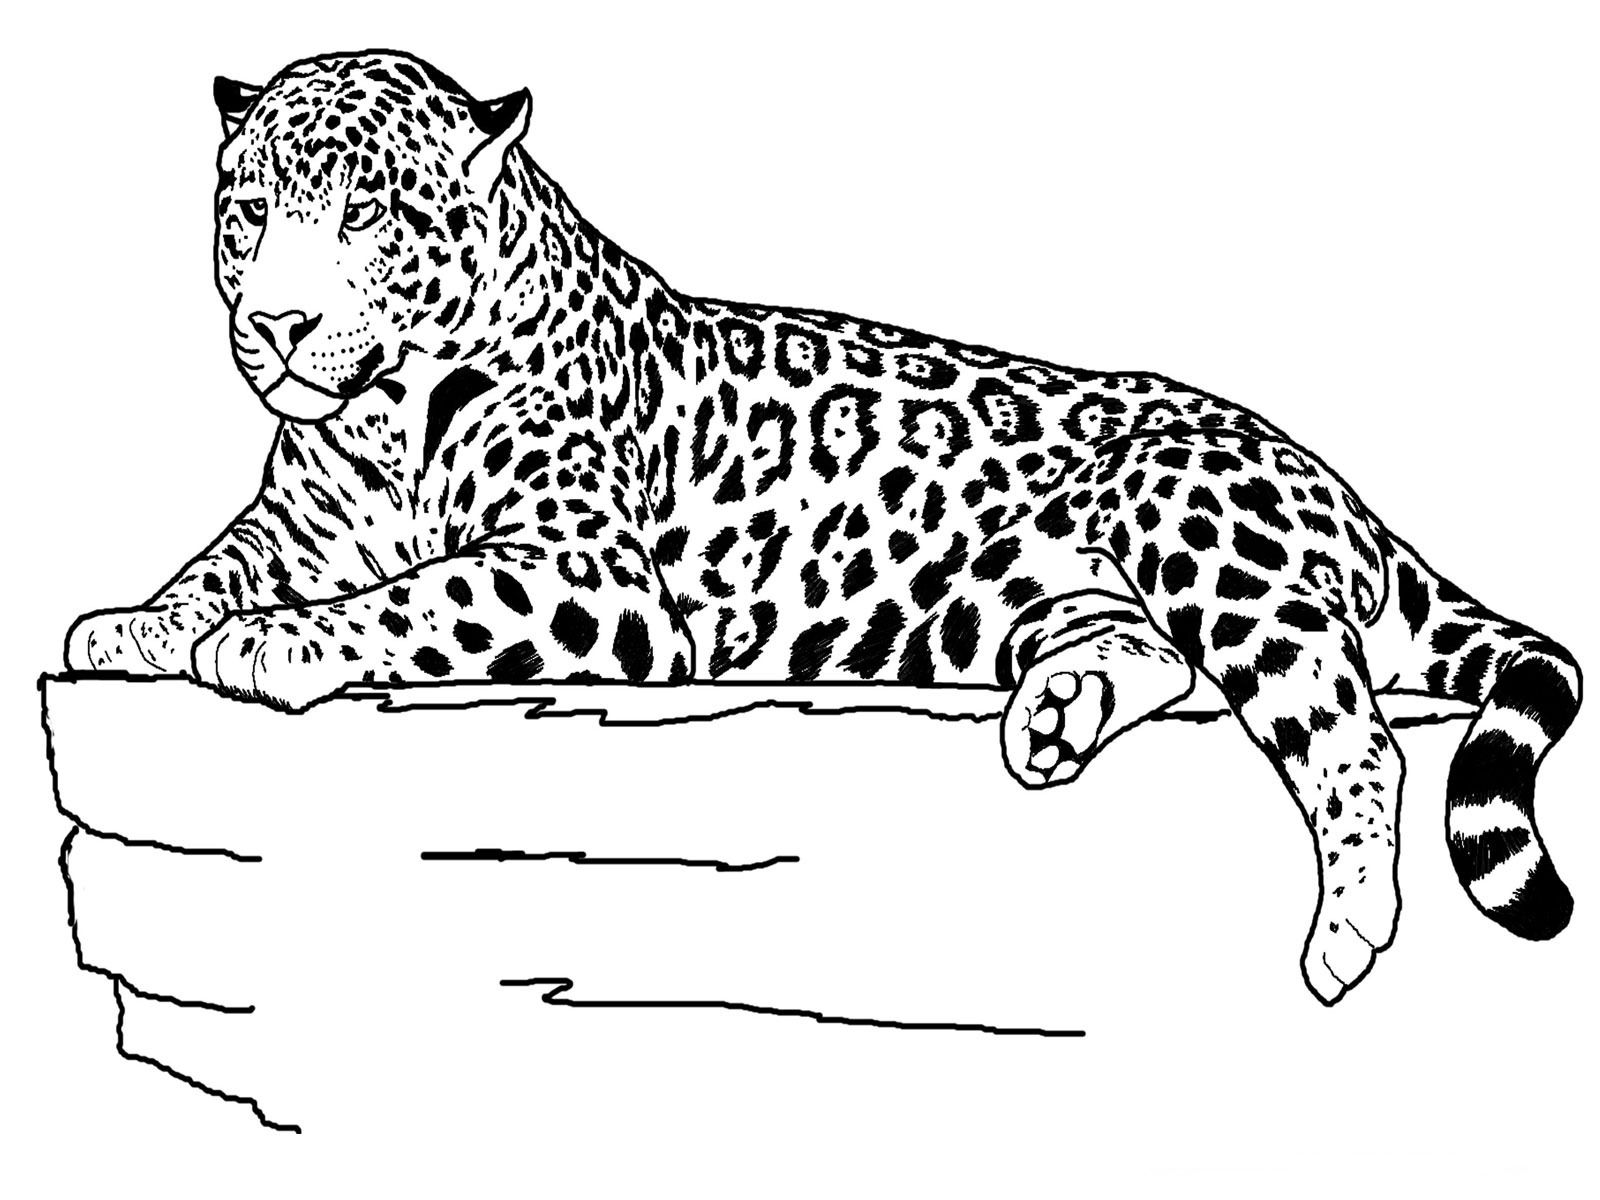 Printable coloring pages jungle animals - Zoo Animal Coloring Pages Also Available Are Farm Animals All Printable